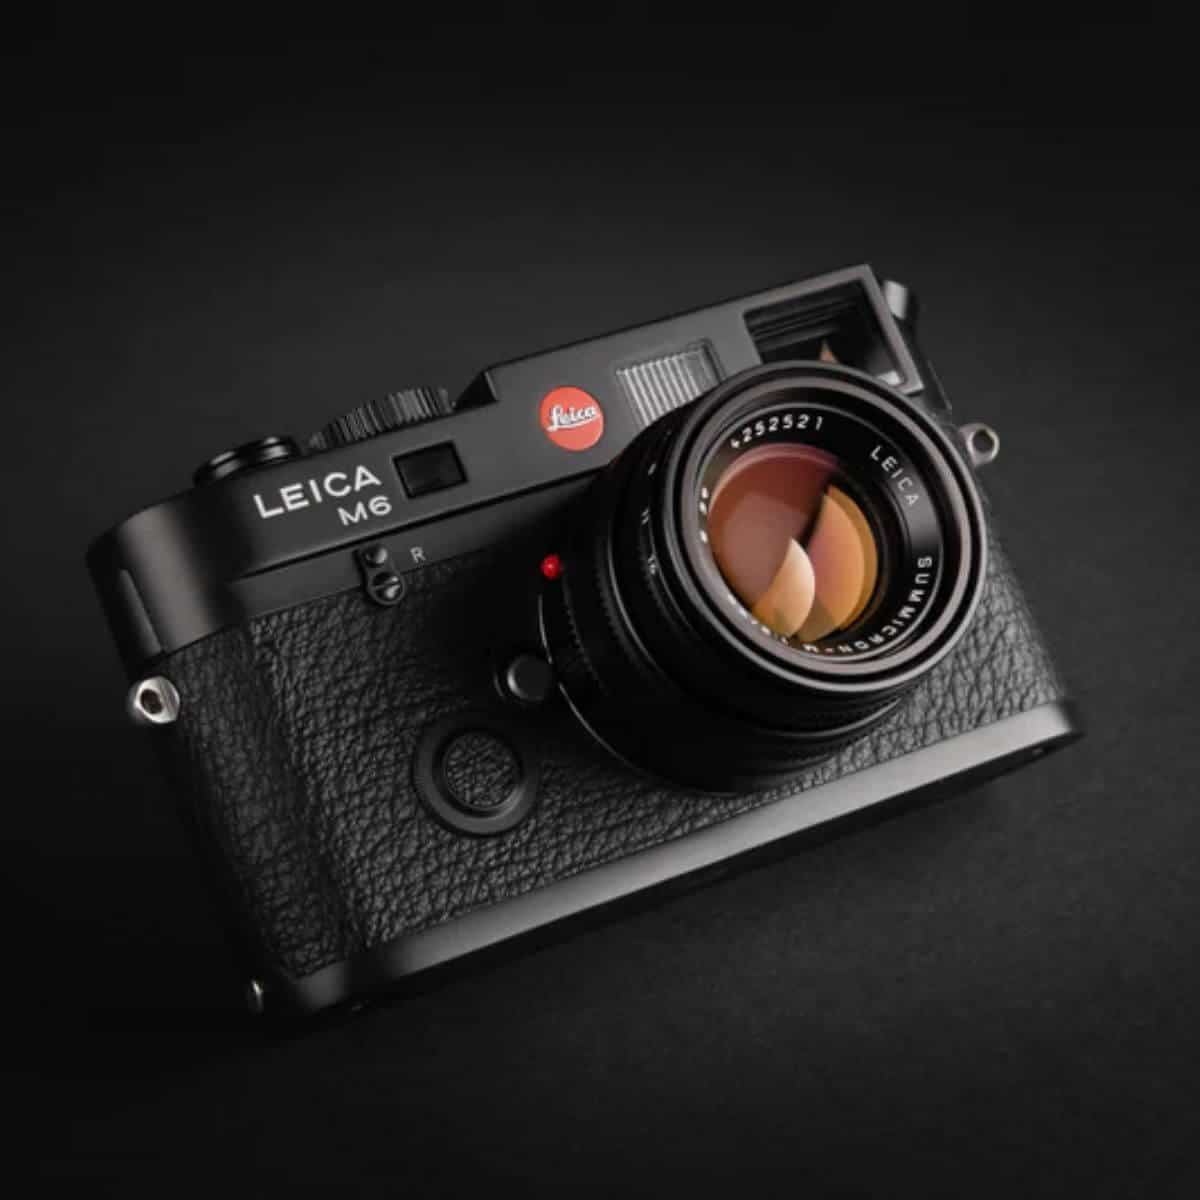 Black Leica camera with a black background.